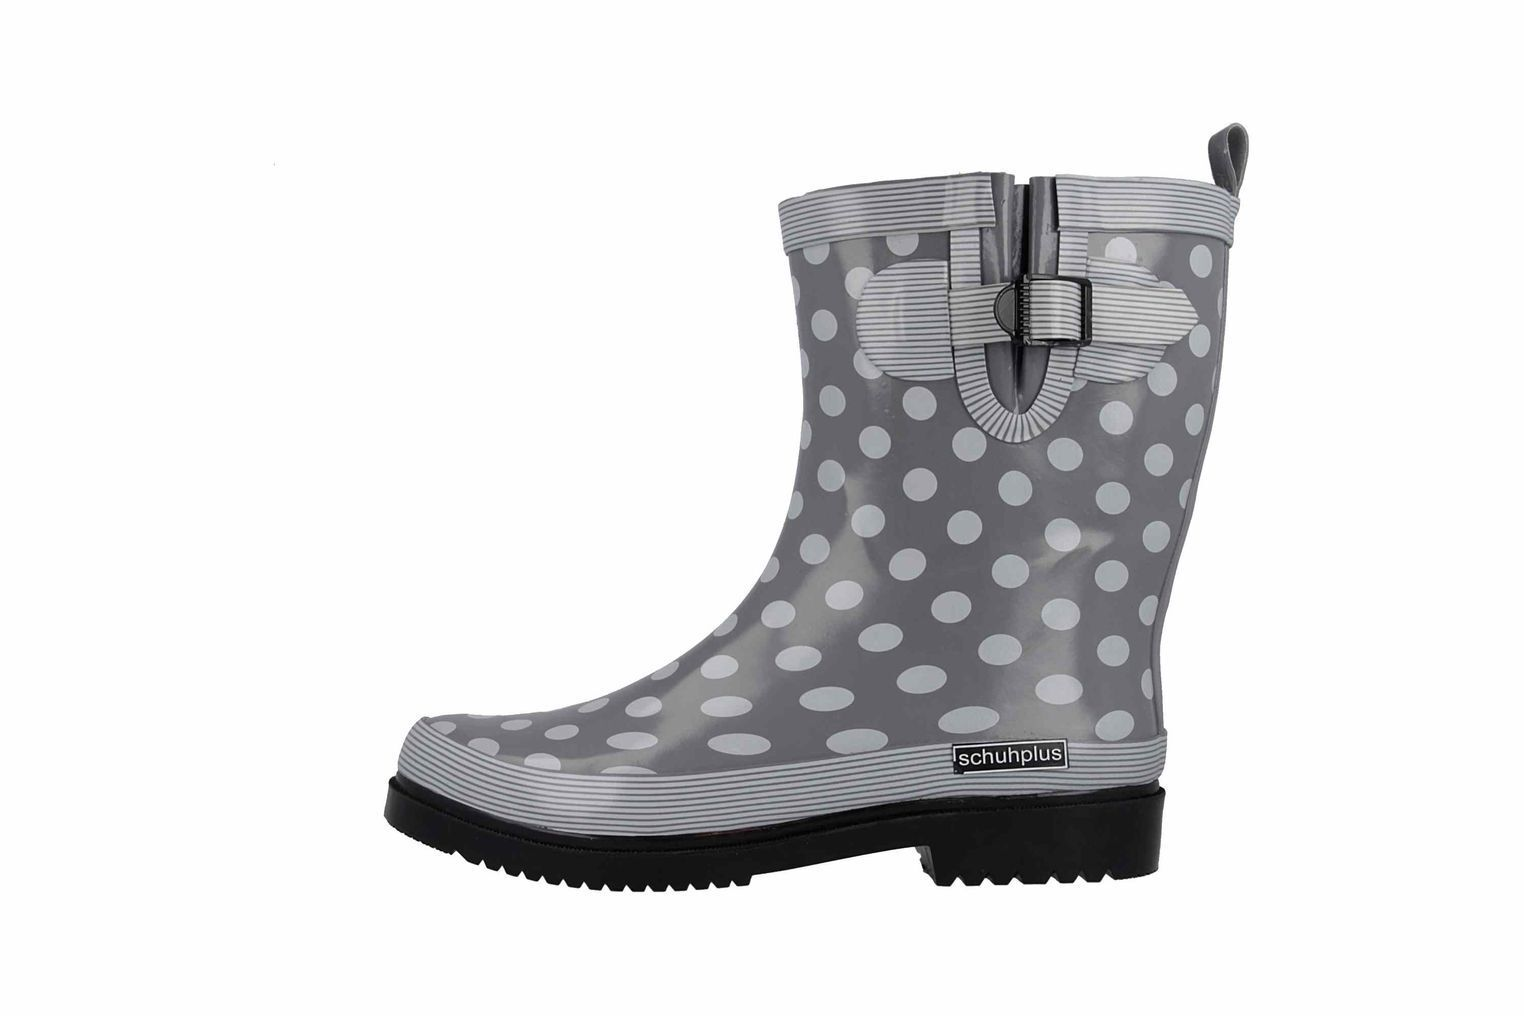 Schuhplus Boots In Sizes Grey Dorin-K-grey Great shoes